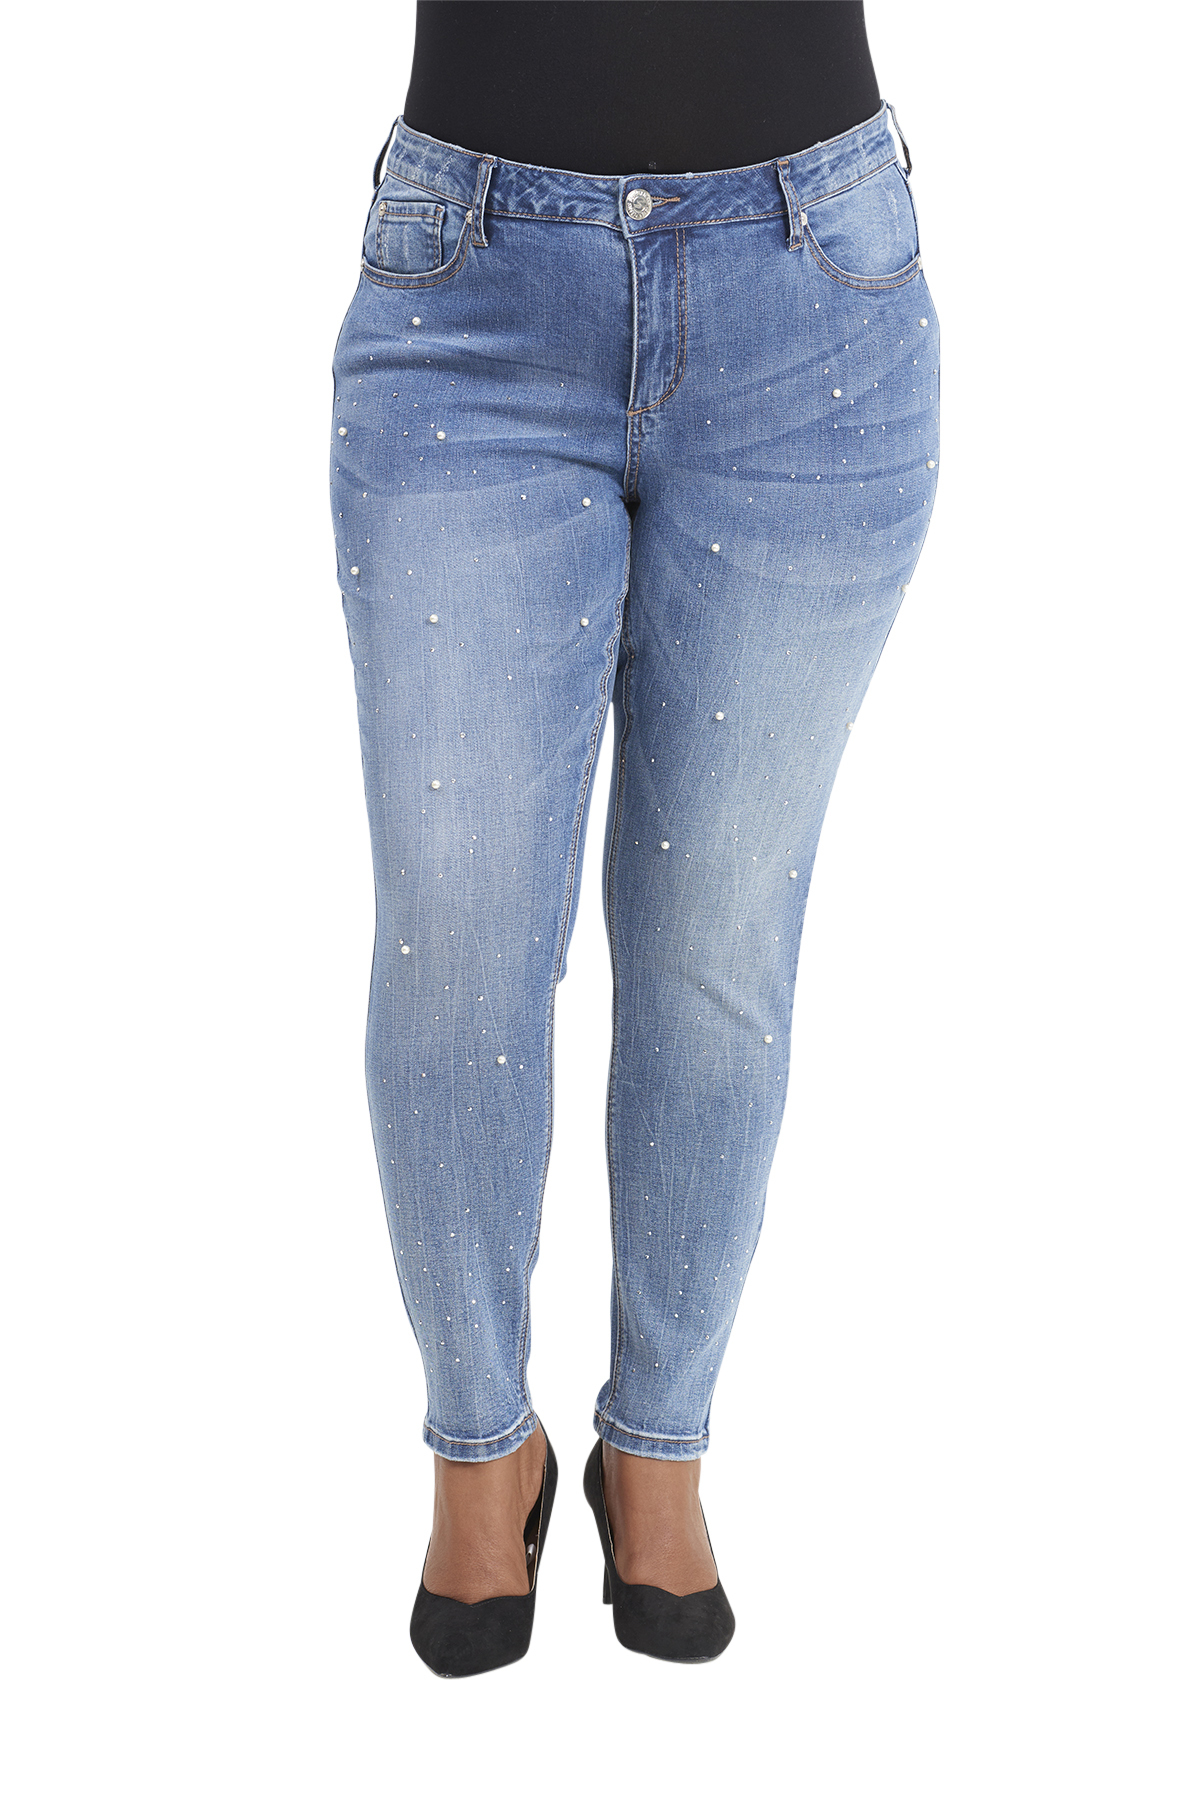 Seven7 Jeans Embellished Leggings